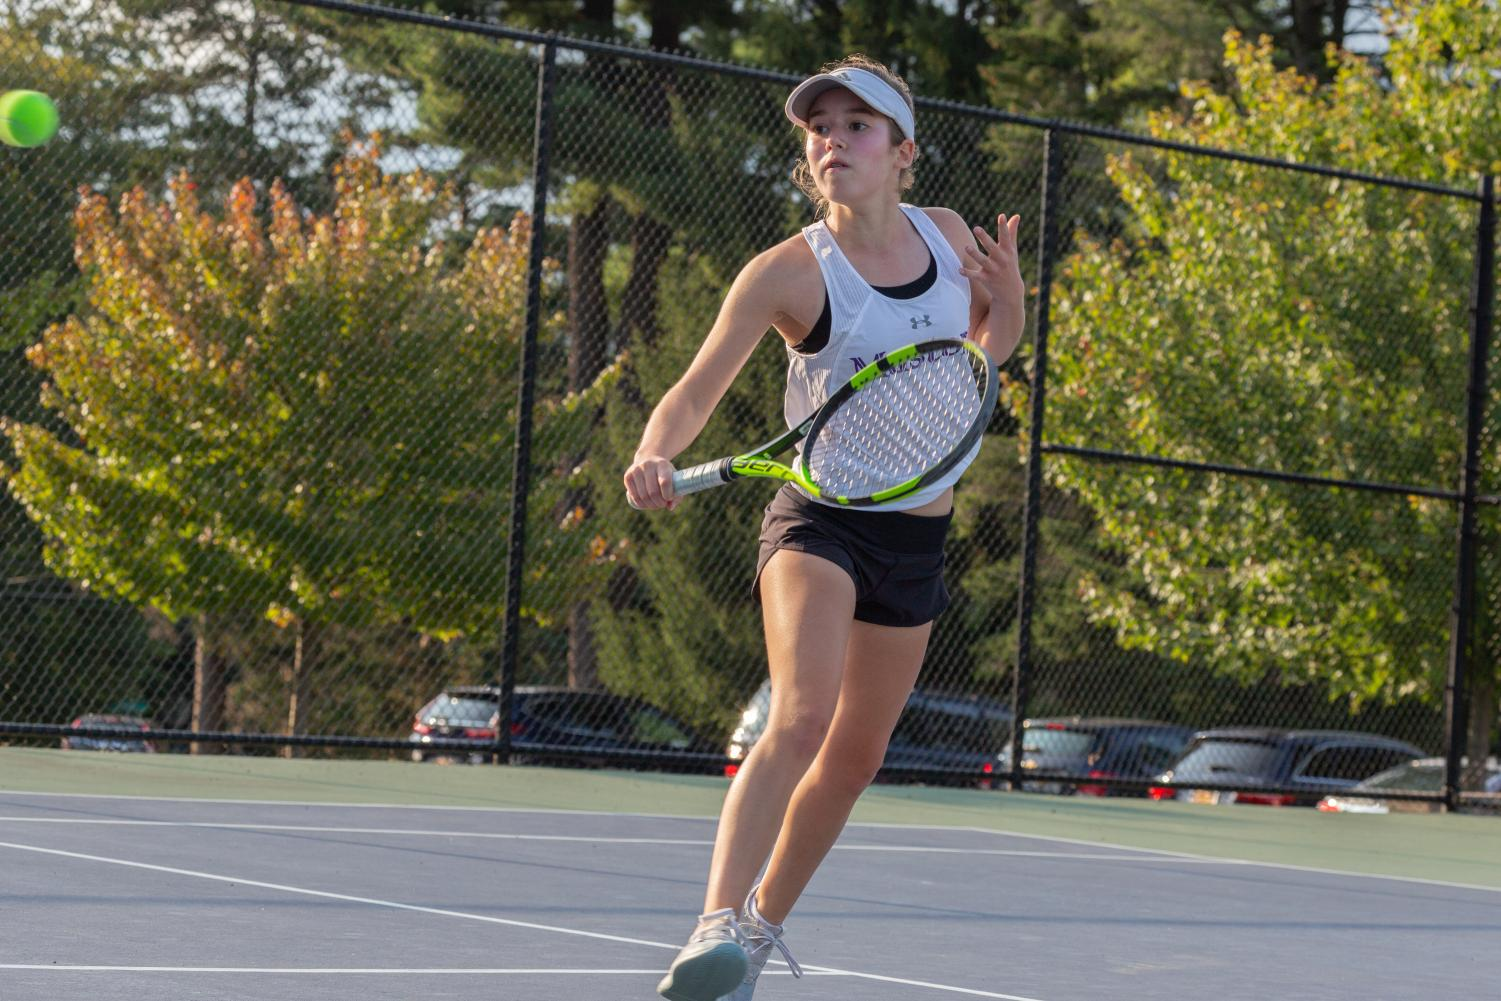 Freshman and first singles' player Hanna Schiciano comes in to the net to hit a shot. The team had one of its best seasons in many years.